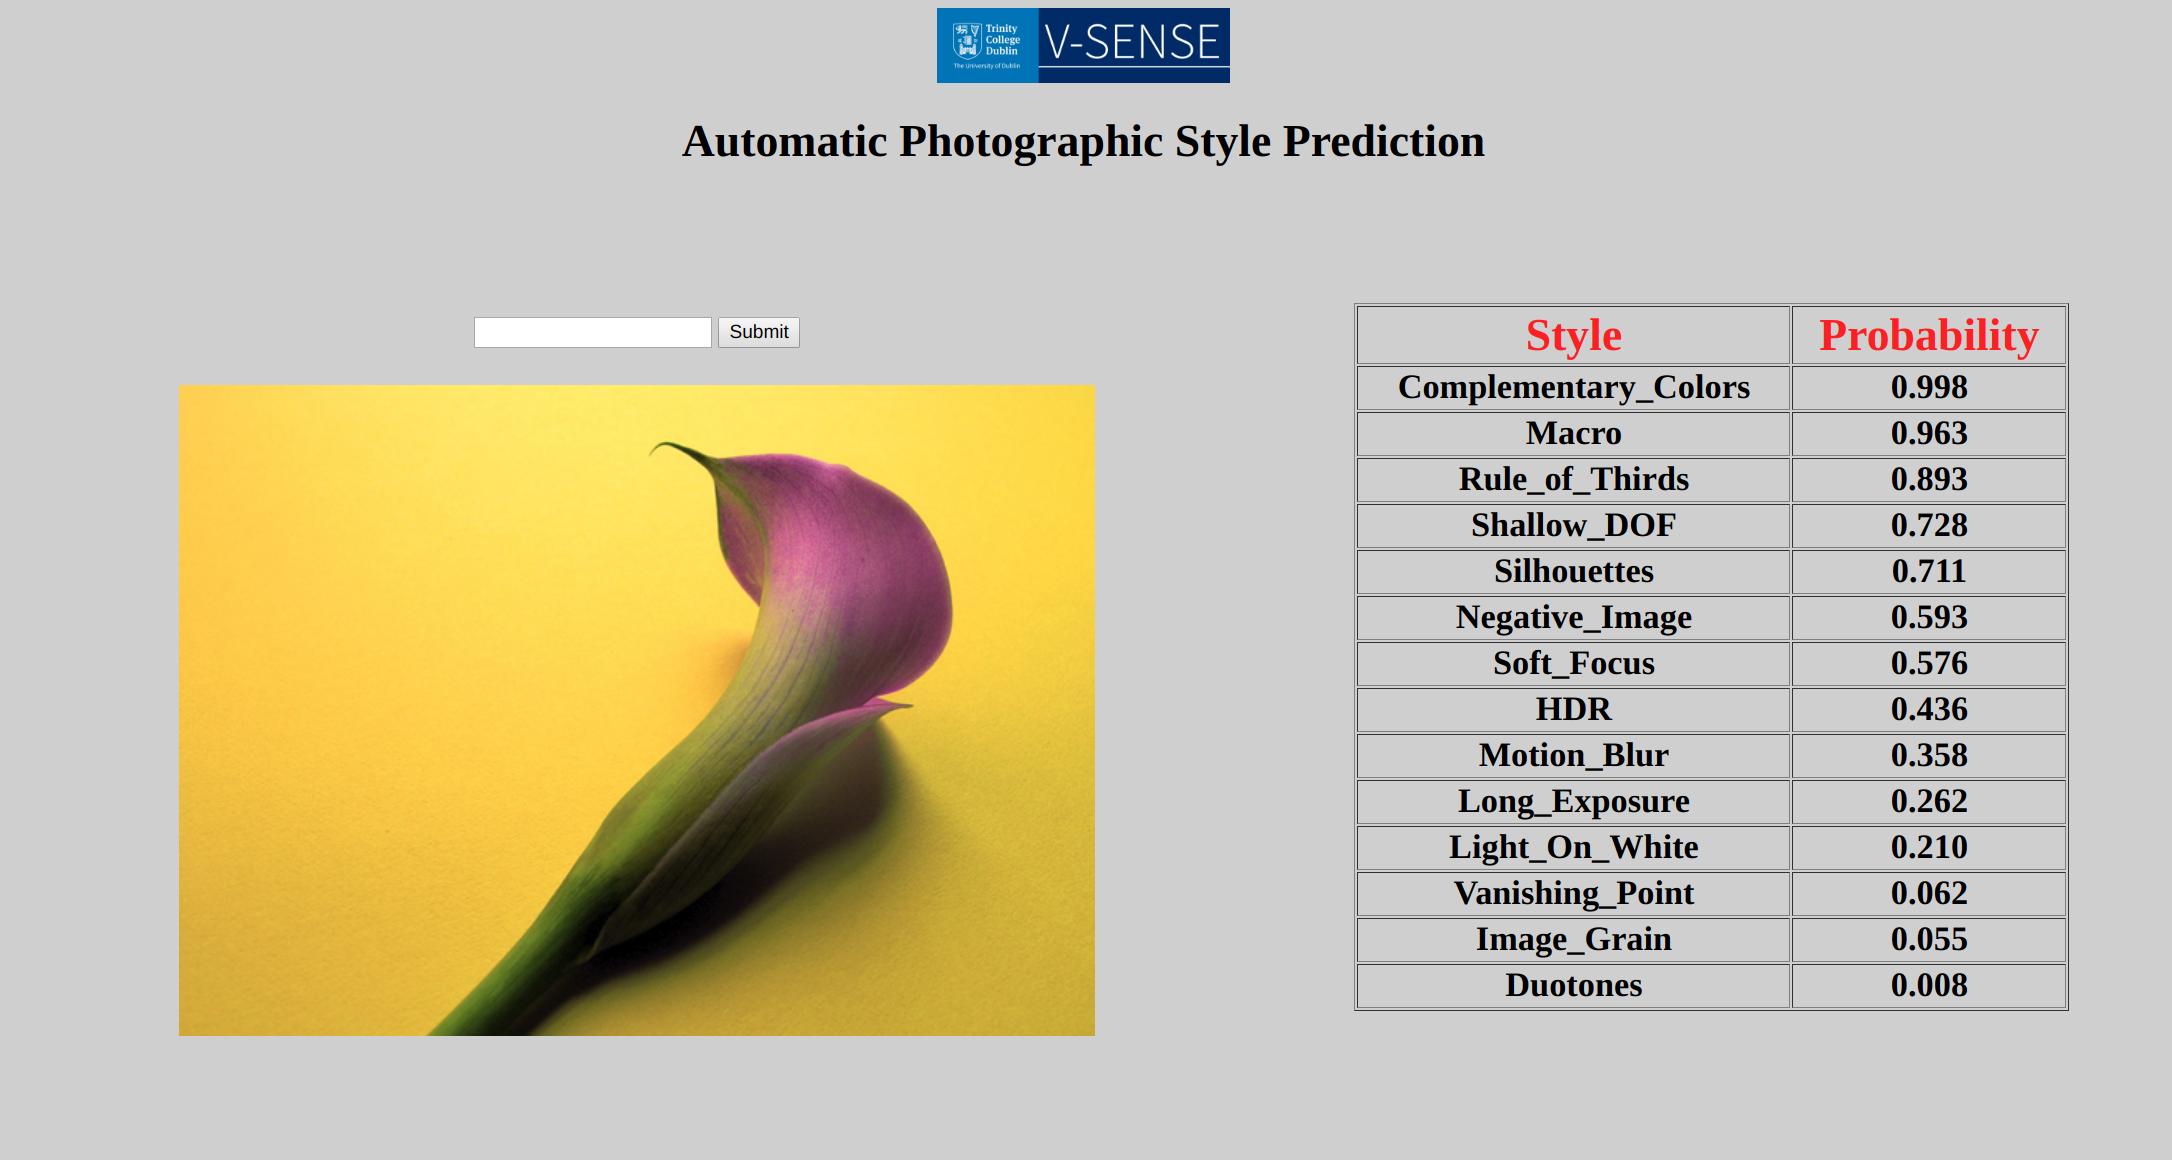 A Geometry-Sensitive Approach for Photographic Style Classification